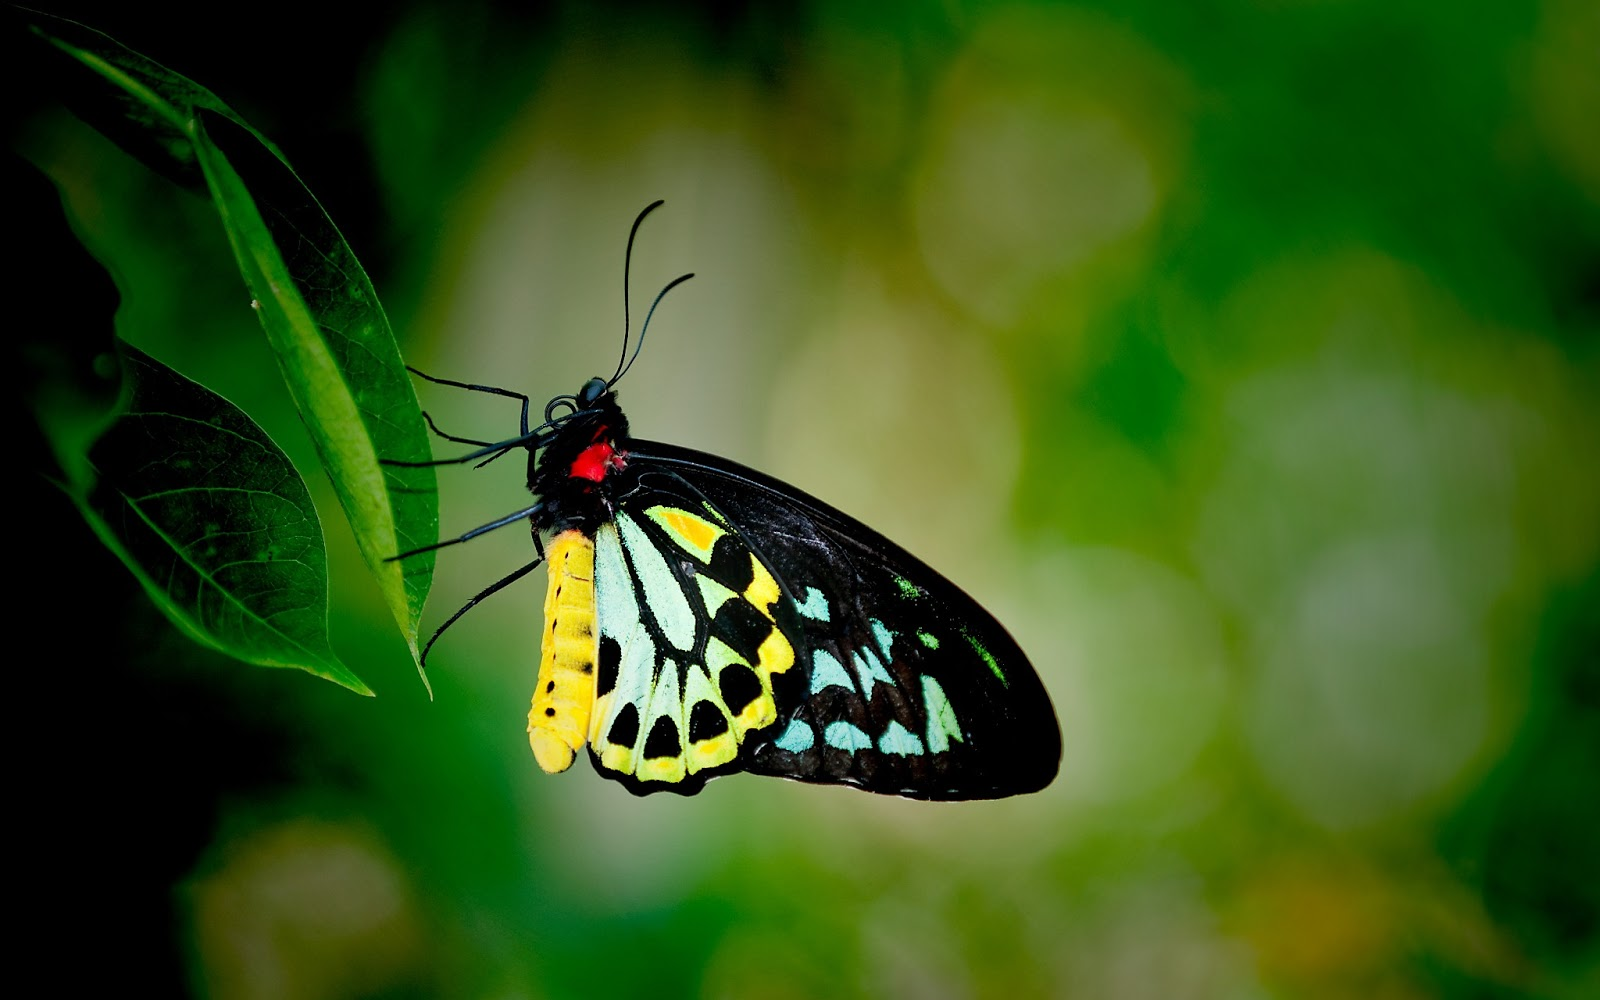 http://2.bp.blogspot.com/-h1FW0-m5IiM/URi4gJ1MQqI/AAAAAAAAED8/eQ10dRboaig/s1600/3D-Colorful-Butterfly-HD-Wallpapers-For-Computer.jpg